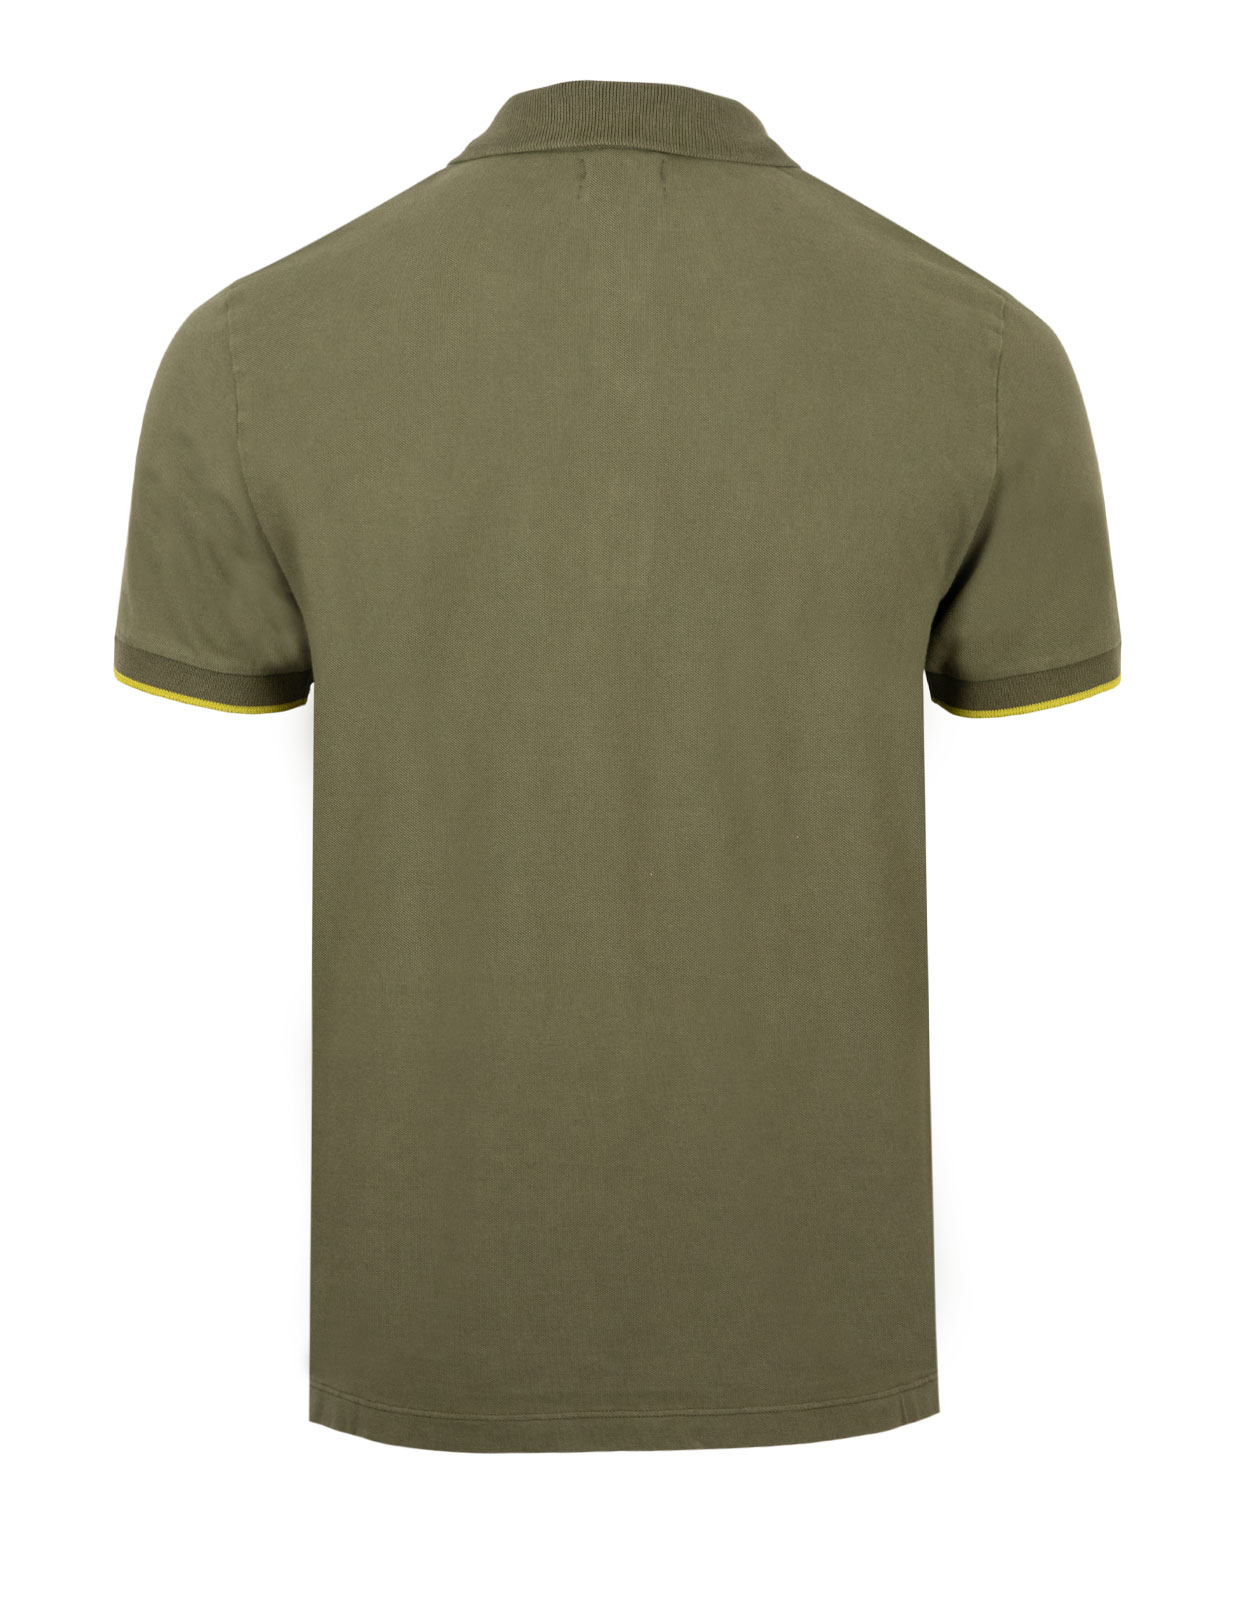 Jacob Cohen Polo Shirt Olive